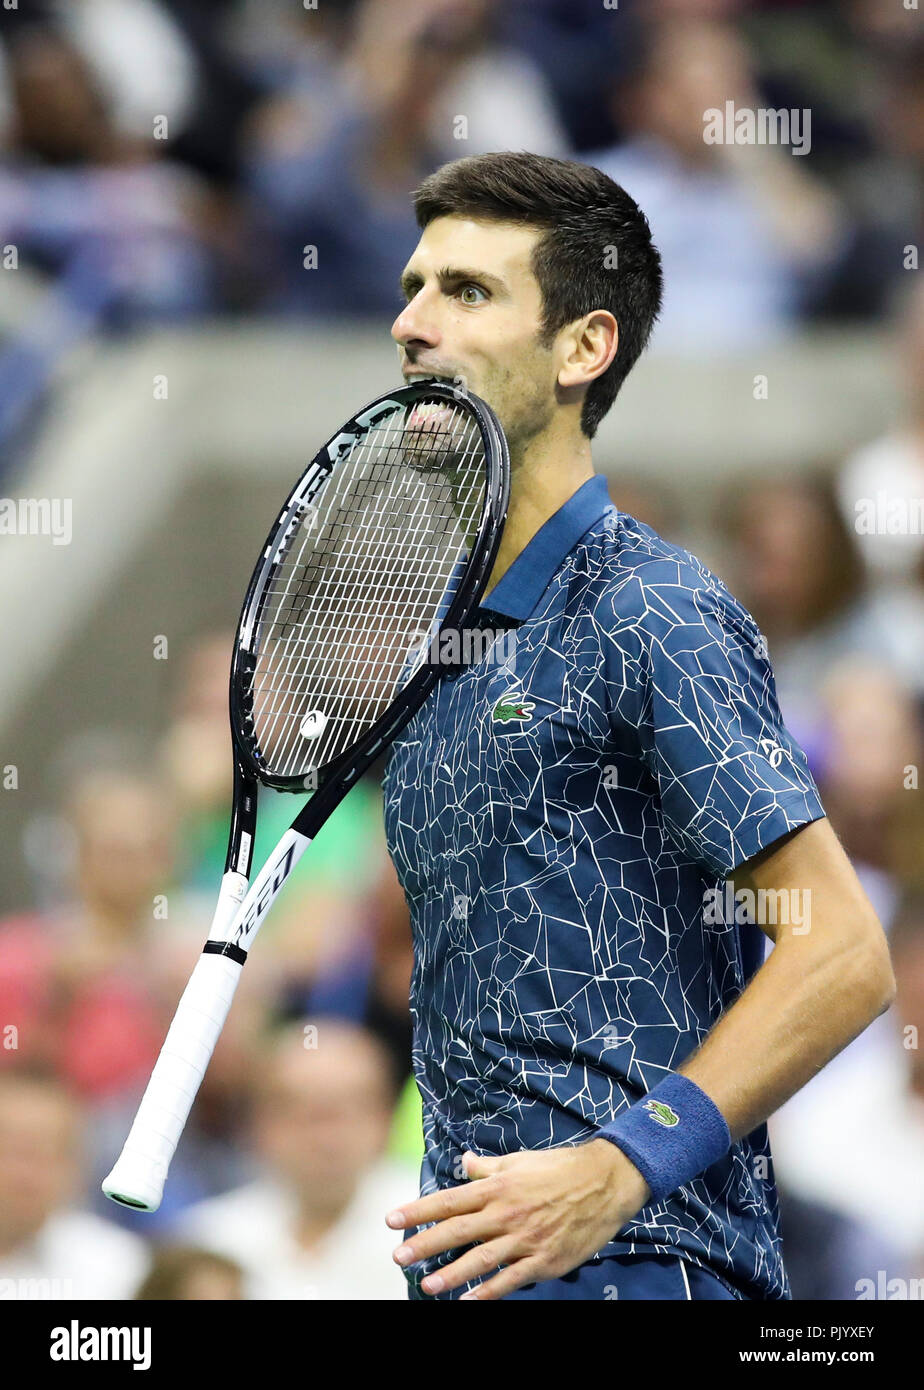 New York Usa 9th Sep 2018 Novak Djokovic Of Serbia Bites His Racket During The Men S Singles Final Match Against Juan Martin Del Potro Of Argentina At The 2018 Us Open Tennis